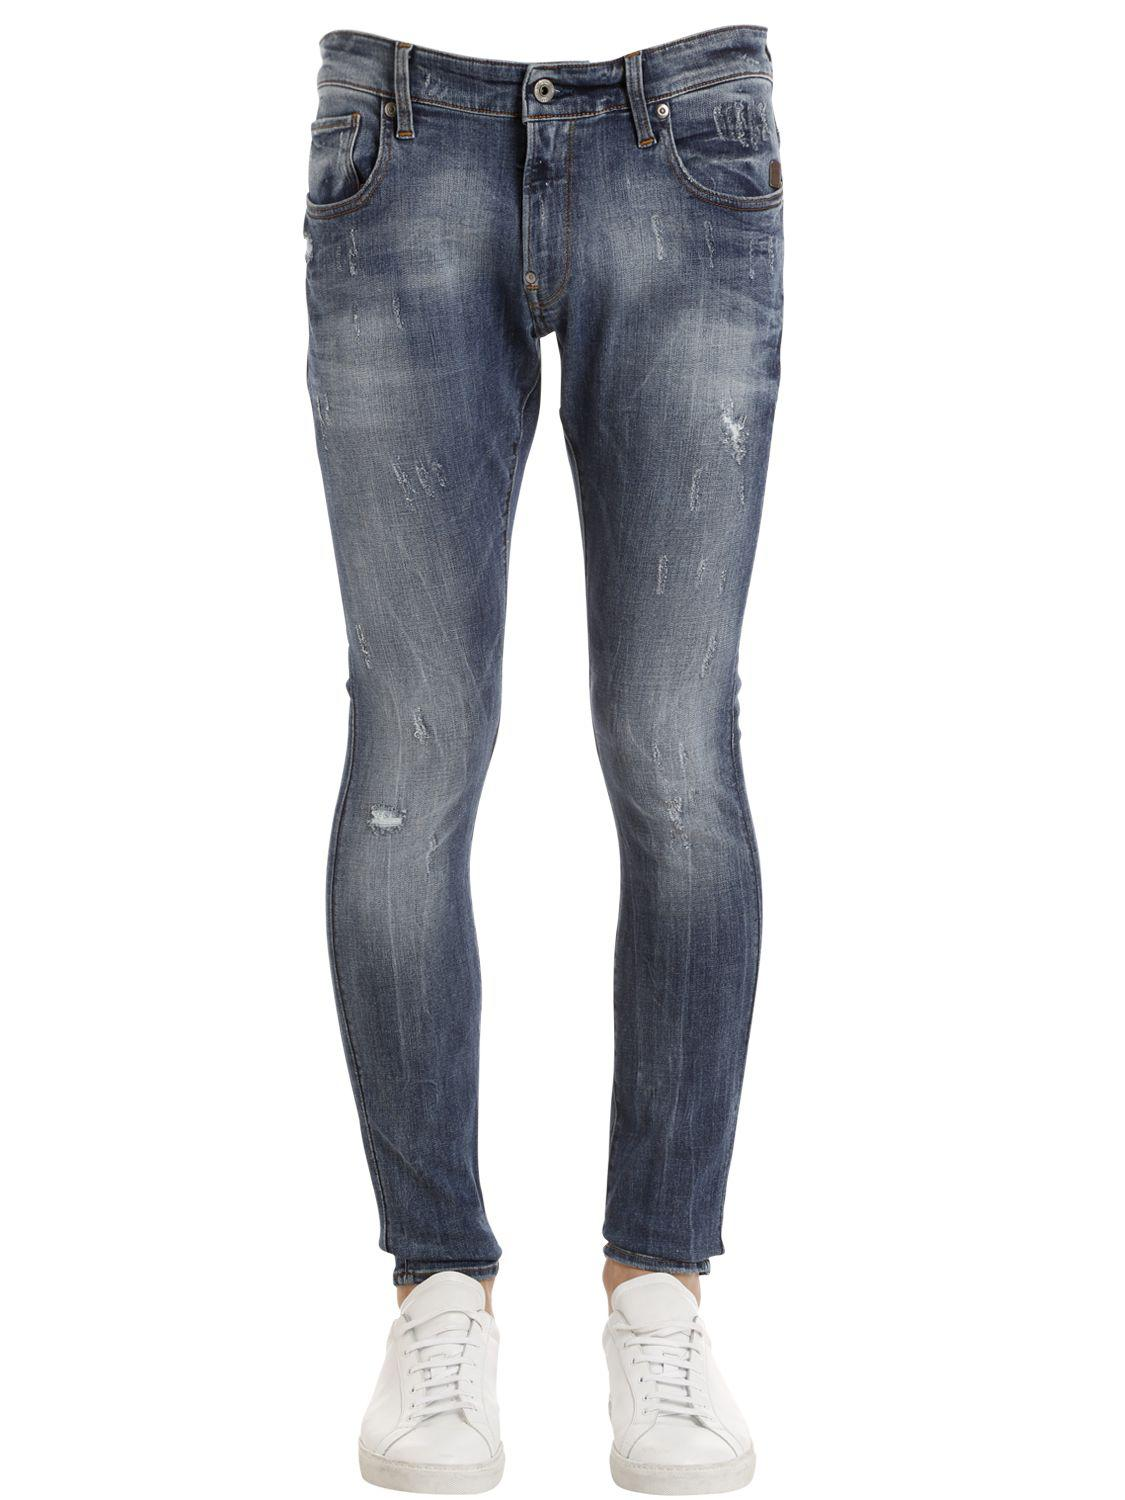 Revend Super Slim Jeans Midwash - Blue G-Star u1O6YLY